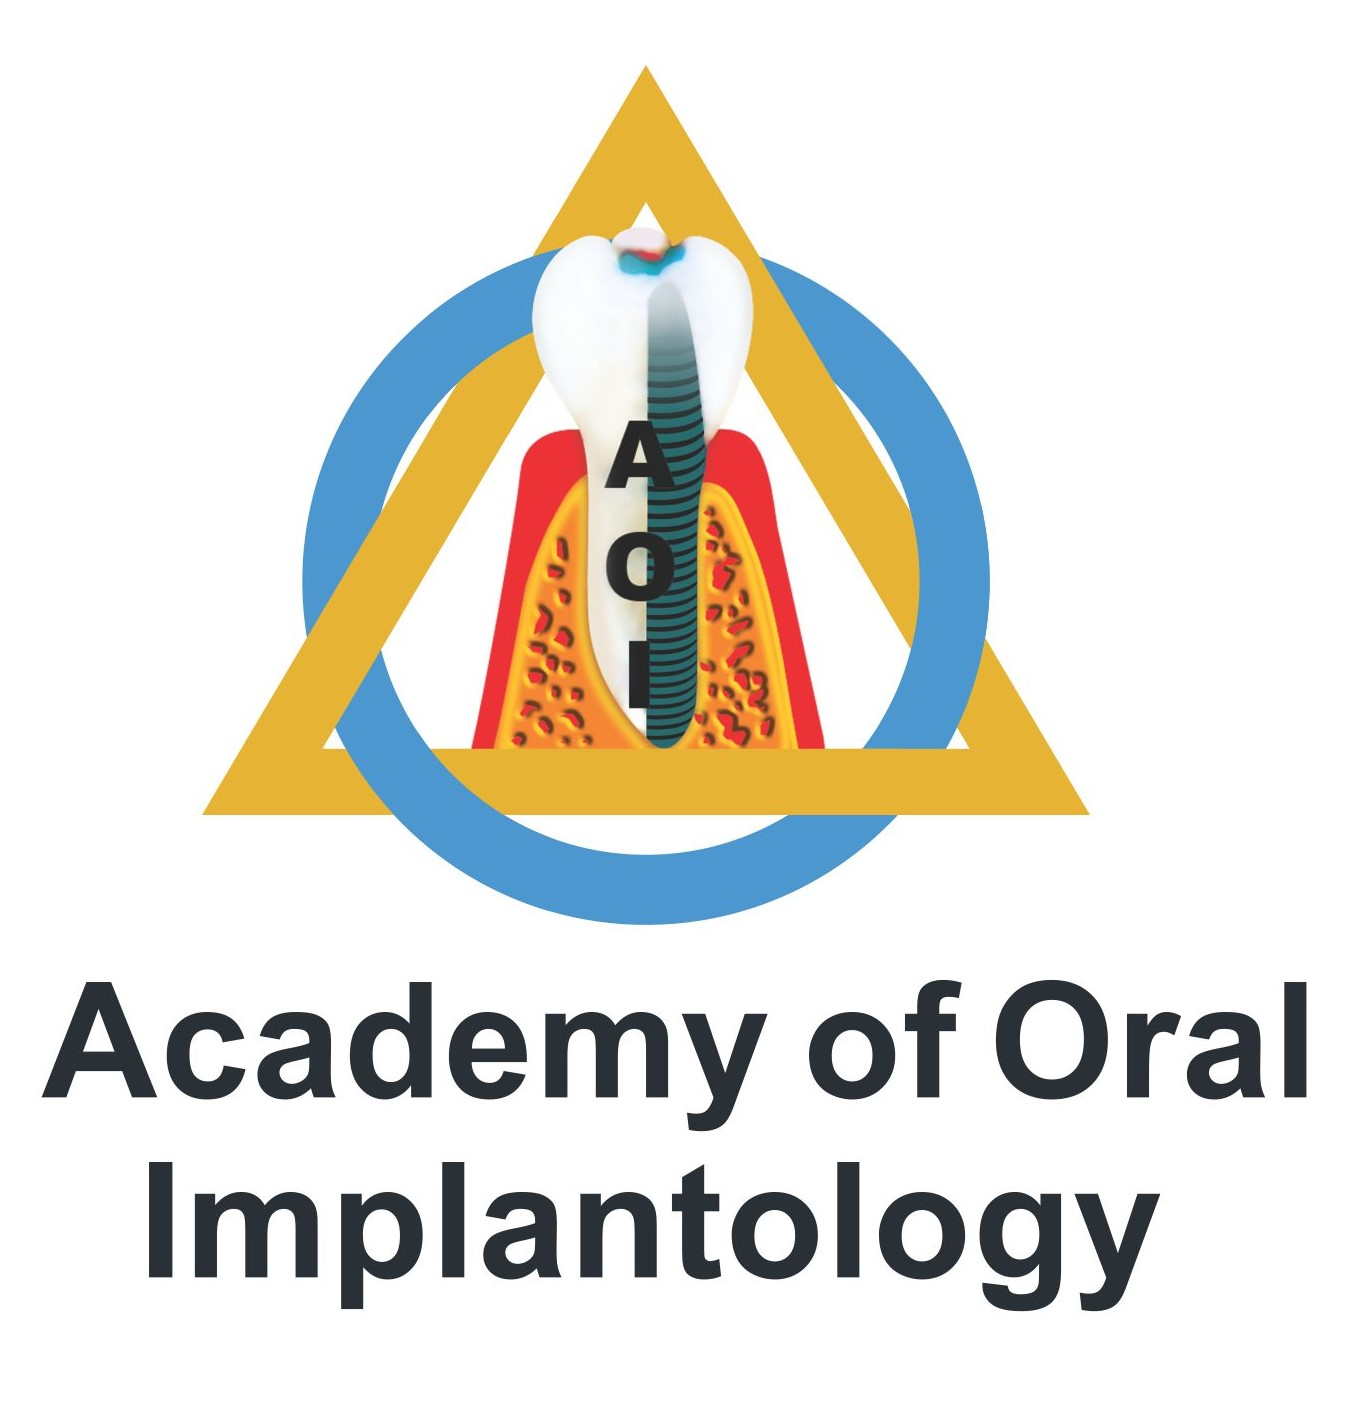 academy of oral implantology logo